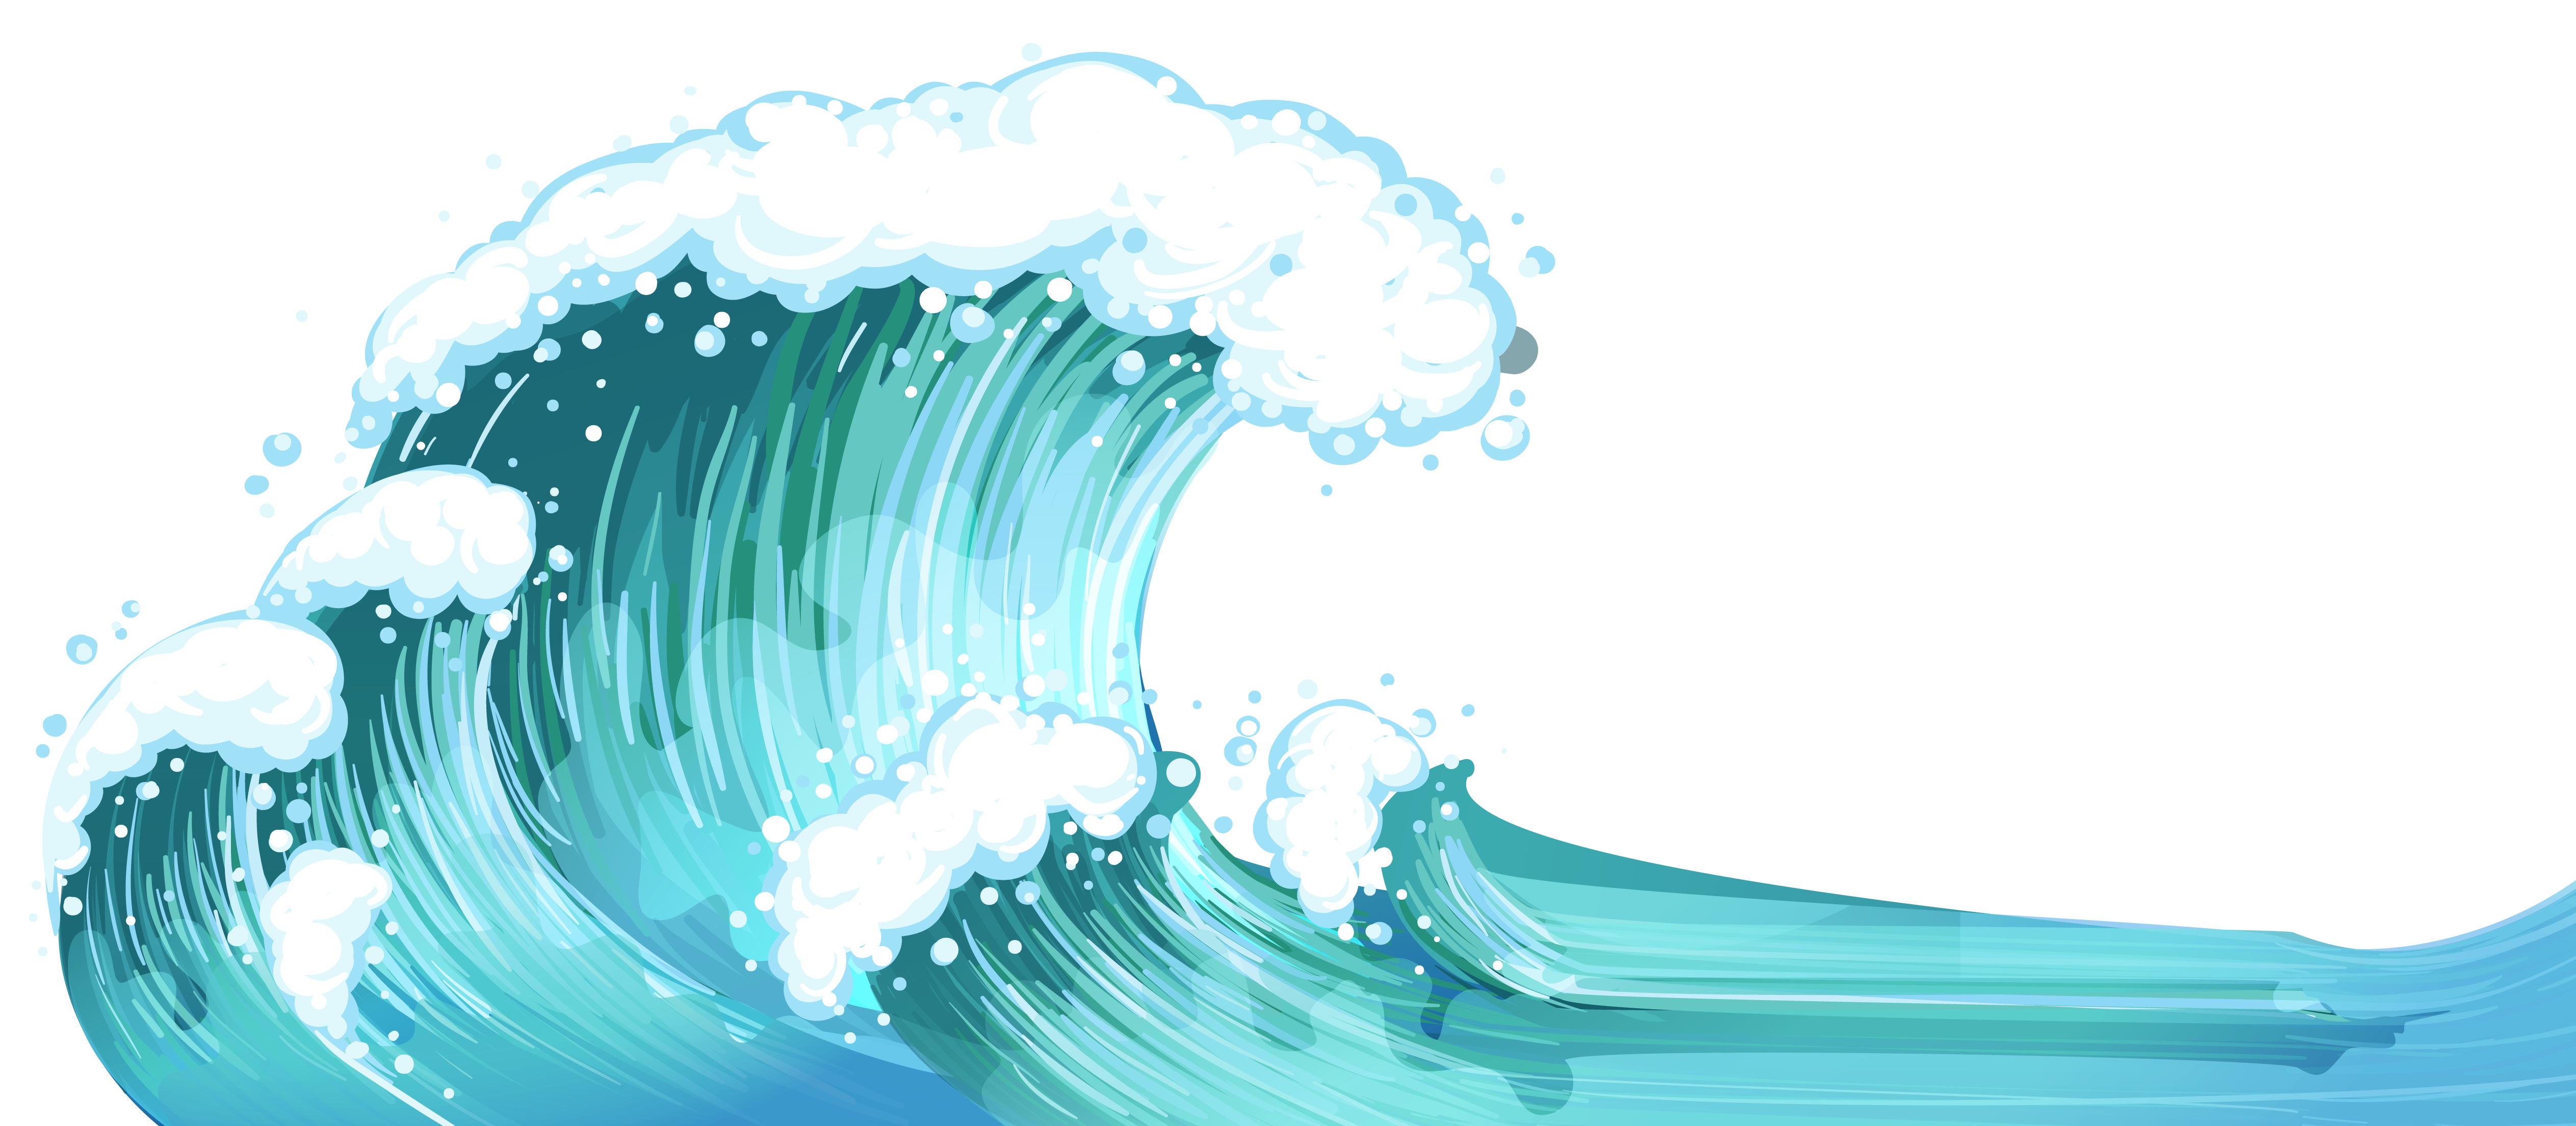 Ocean clipart transparent High Waves Yopriceville Fullsize Download